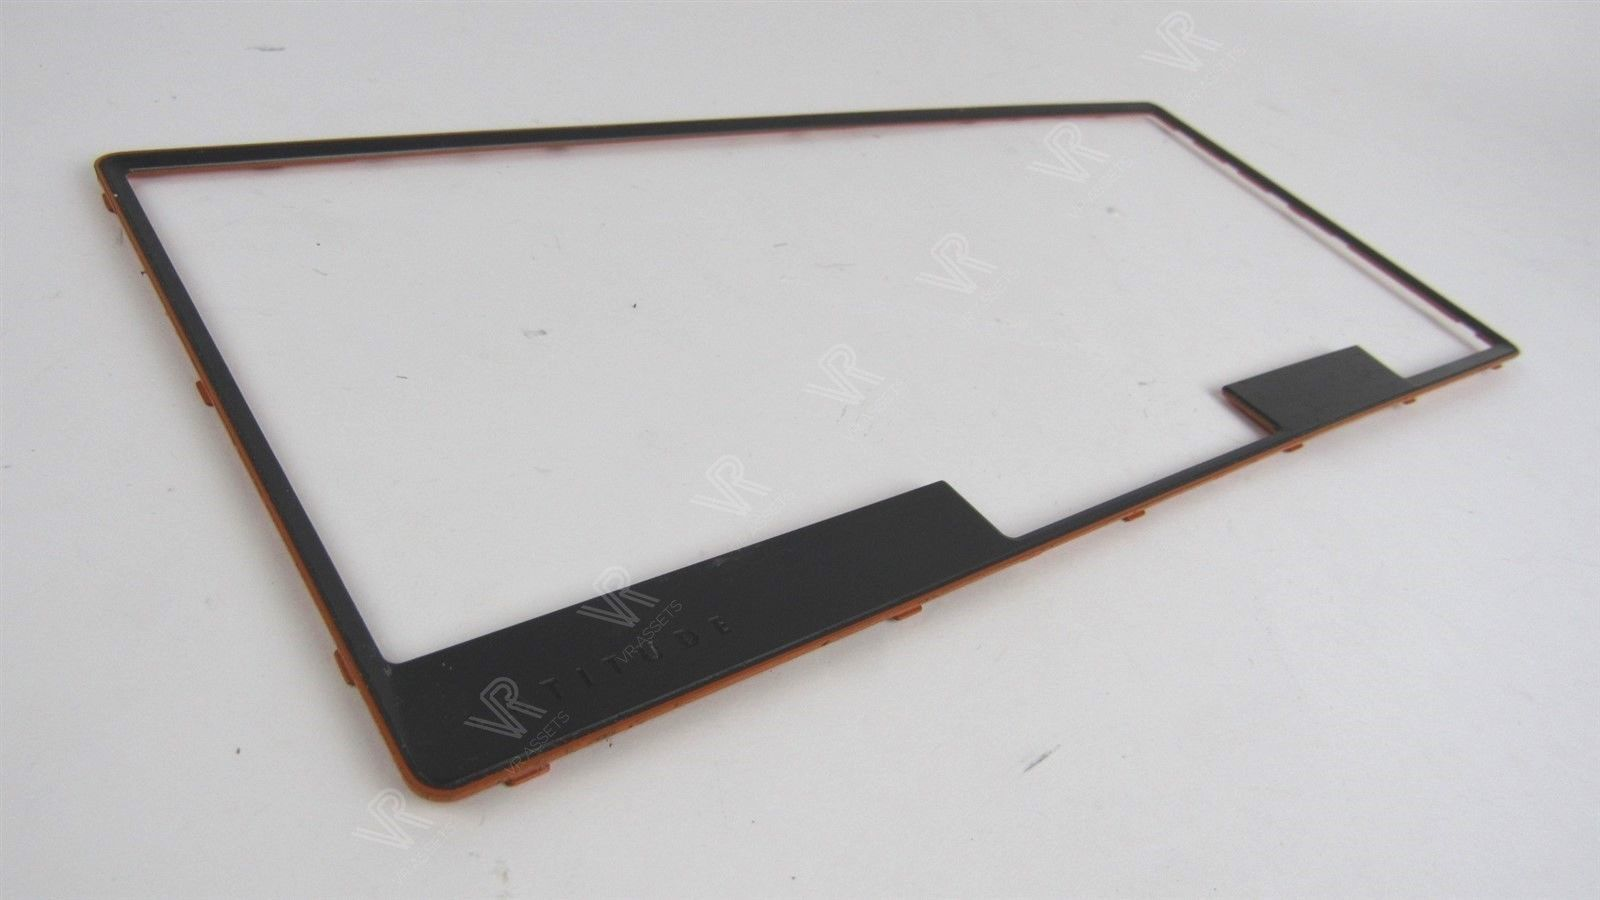 Genuine Dell Latitude XT3 Laptop Keyboard Trim Bezel 0PM4TV PM4TV